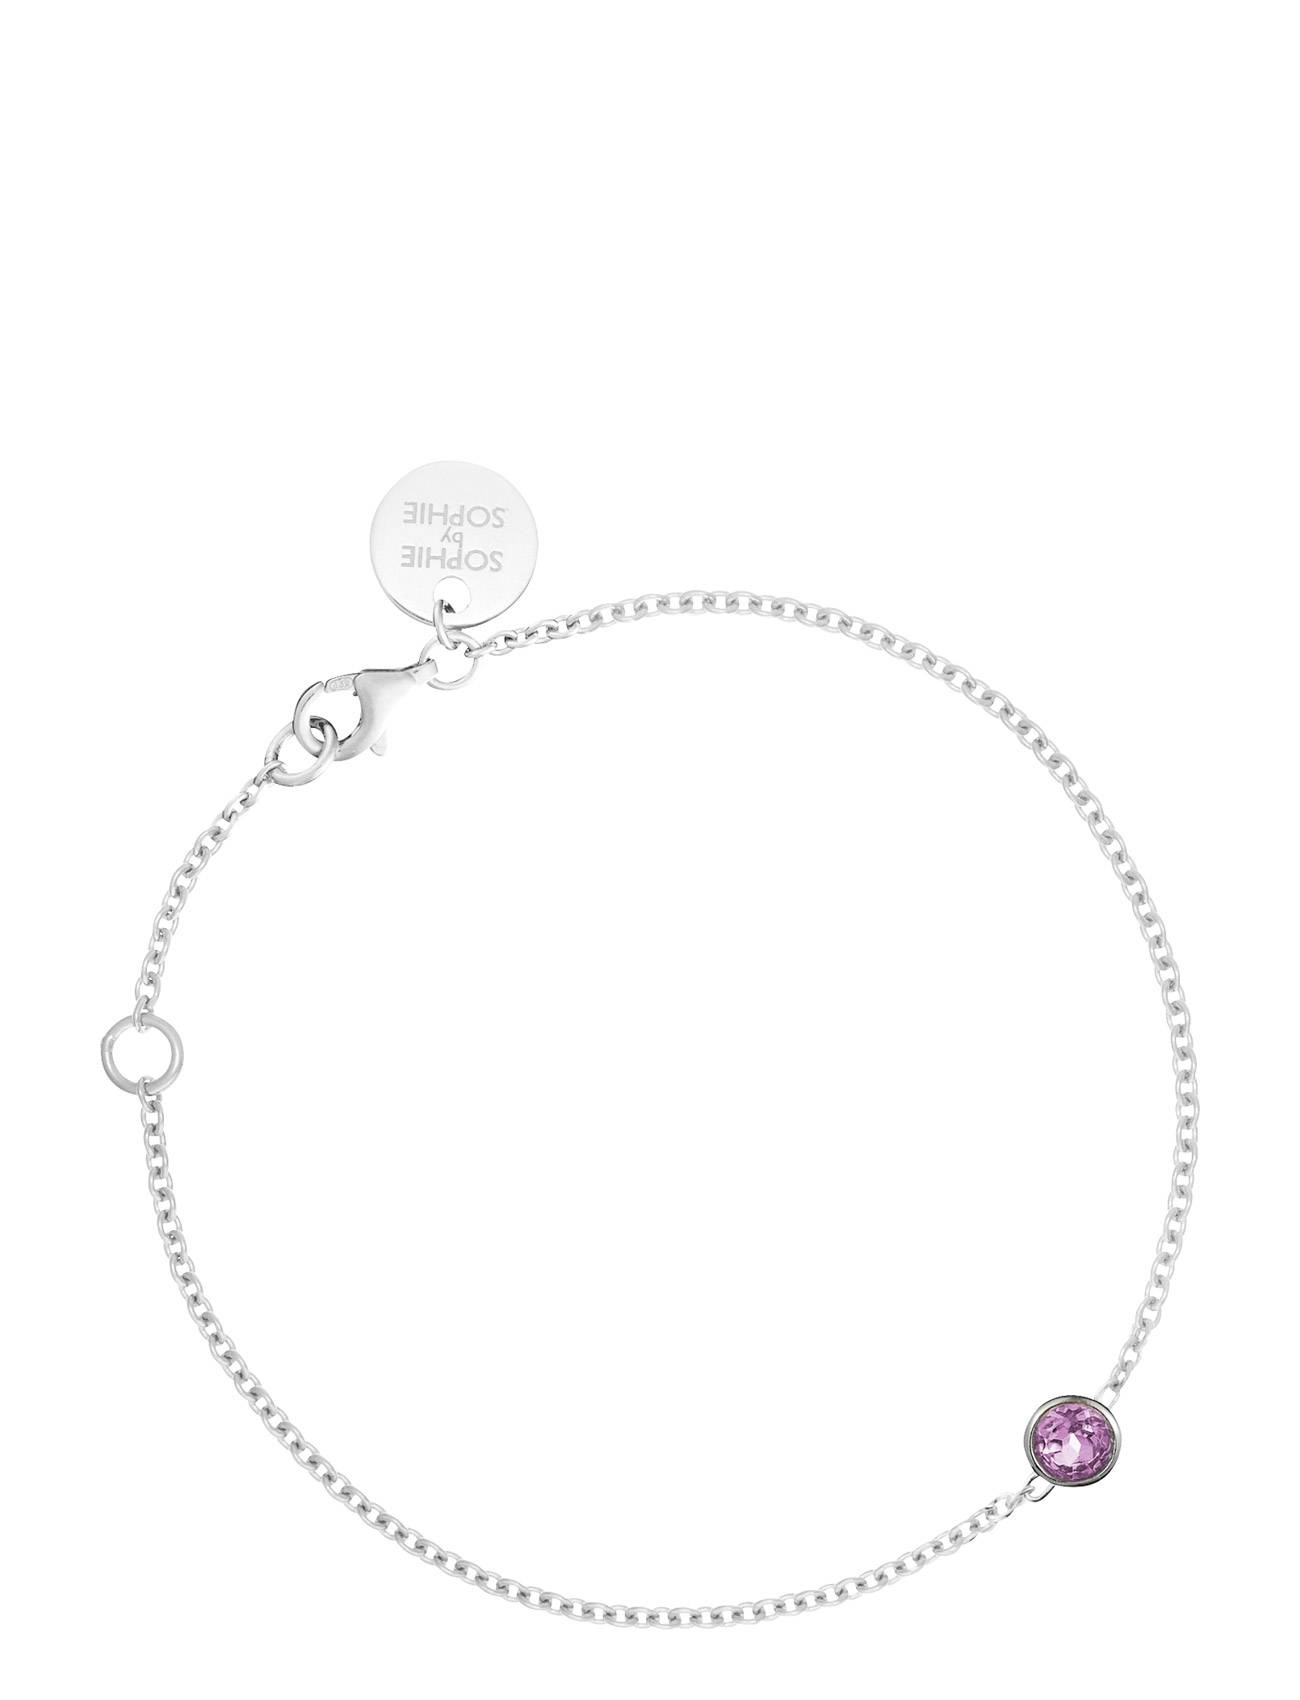 SOPHIE by SOPHIE Birthstone Bracelet - February